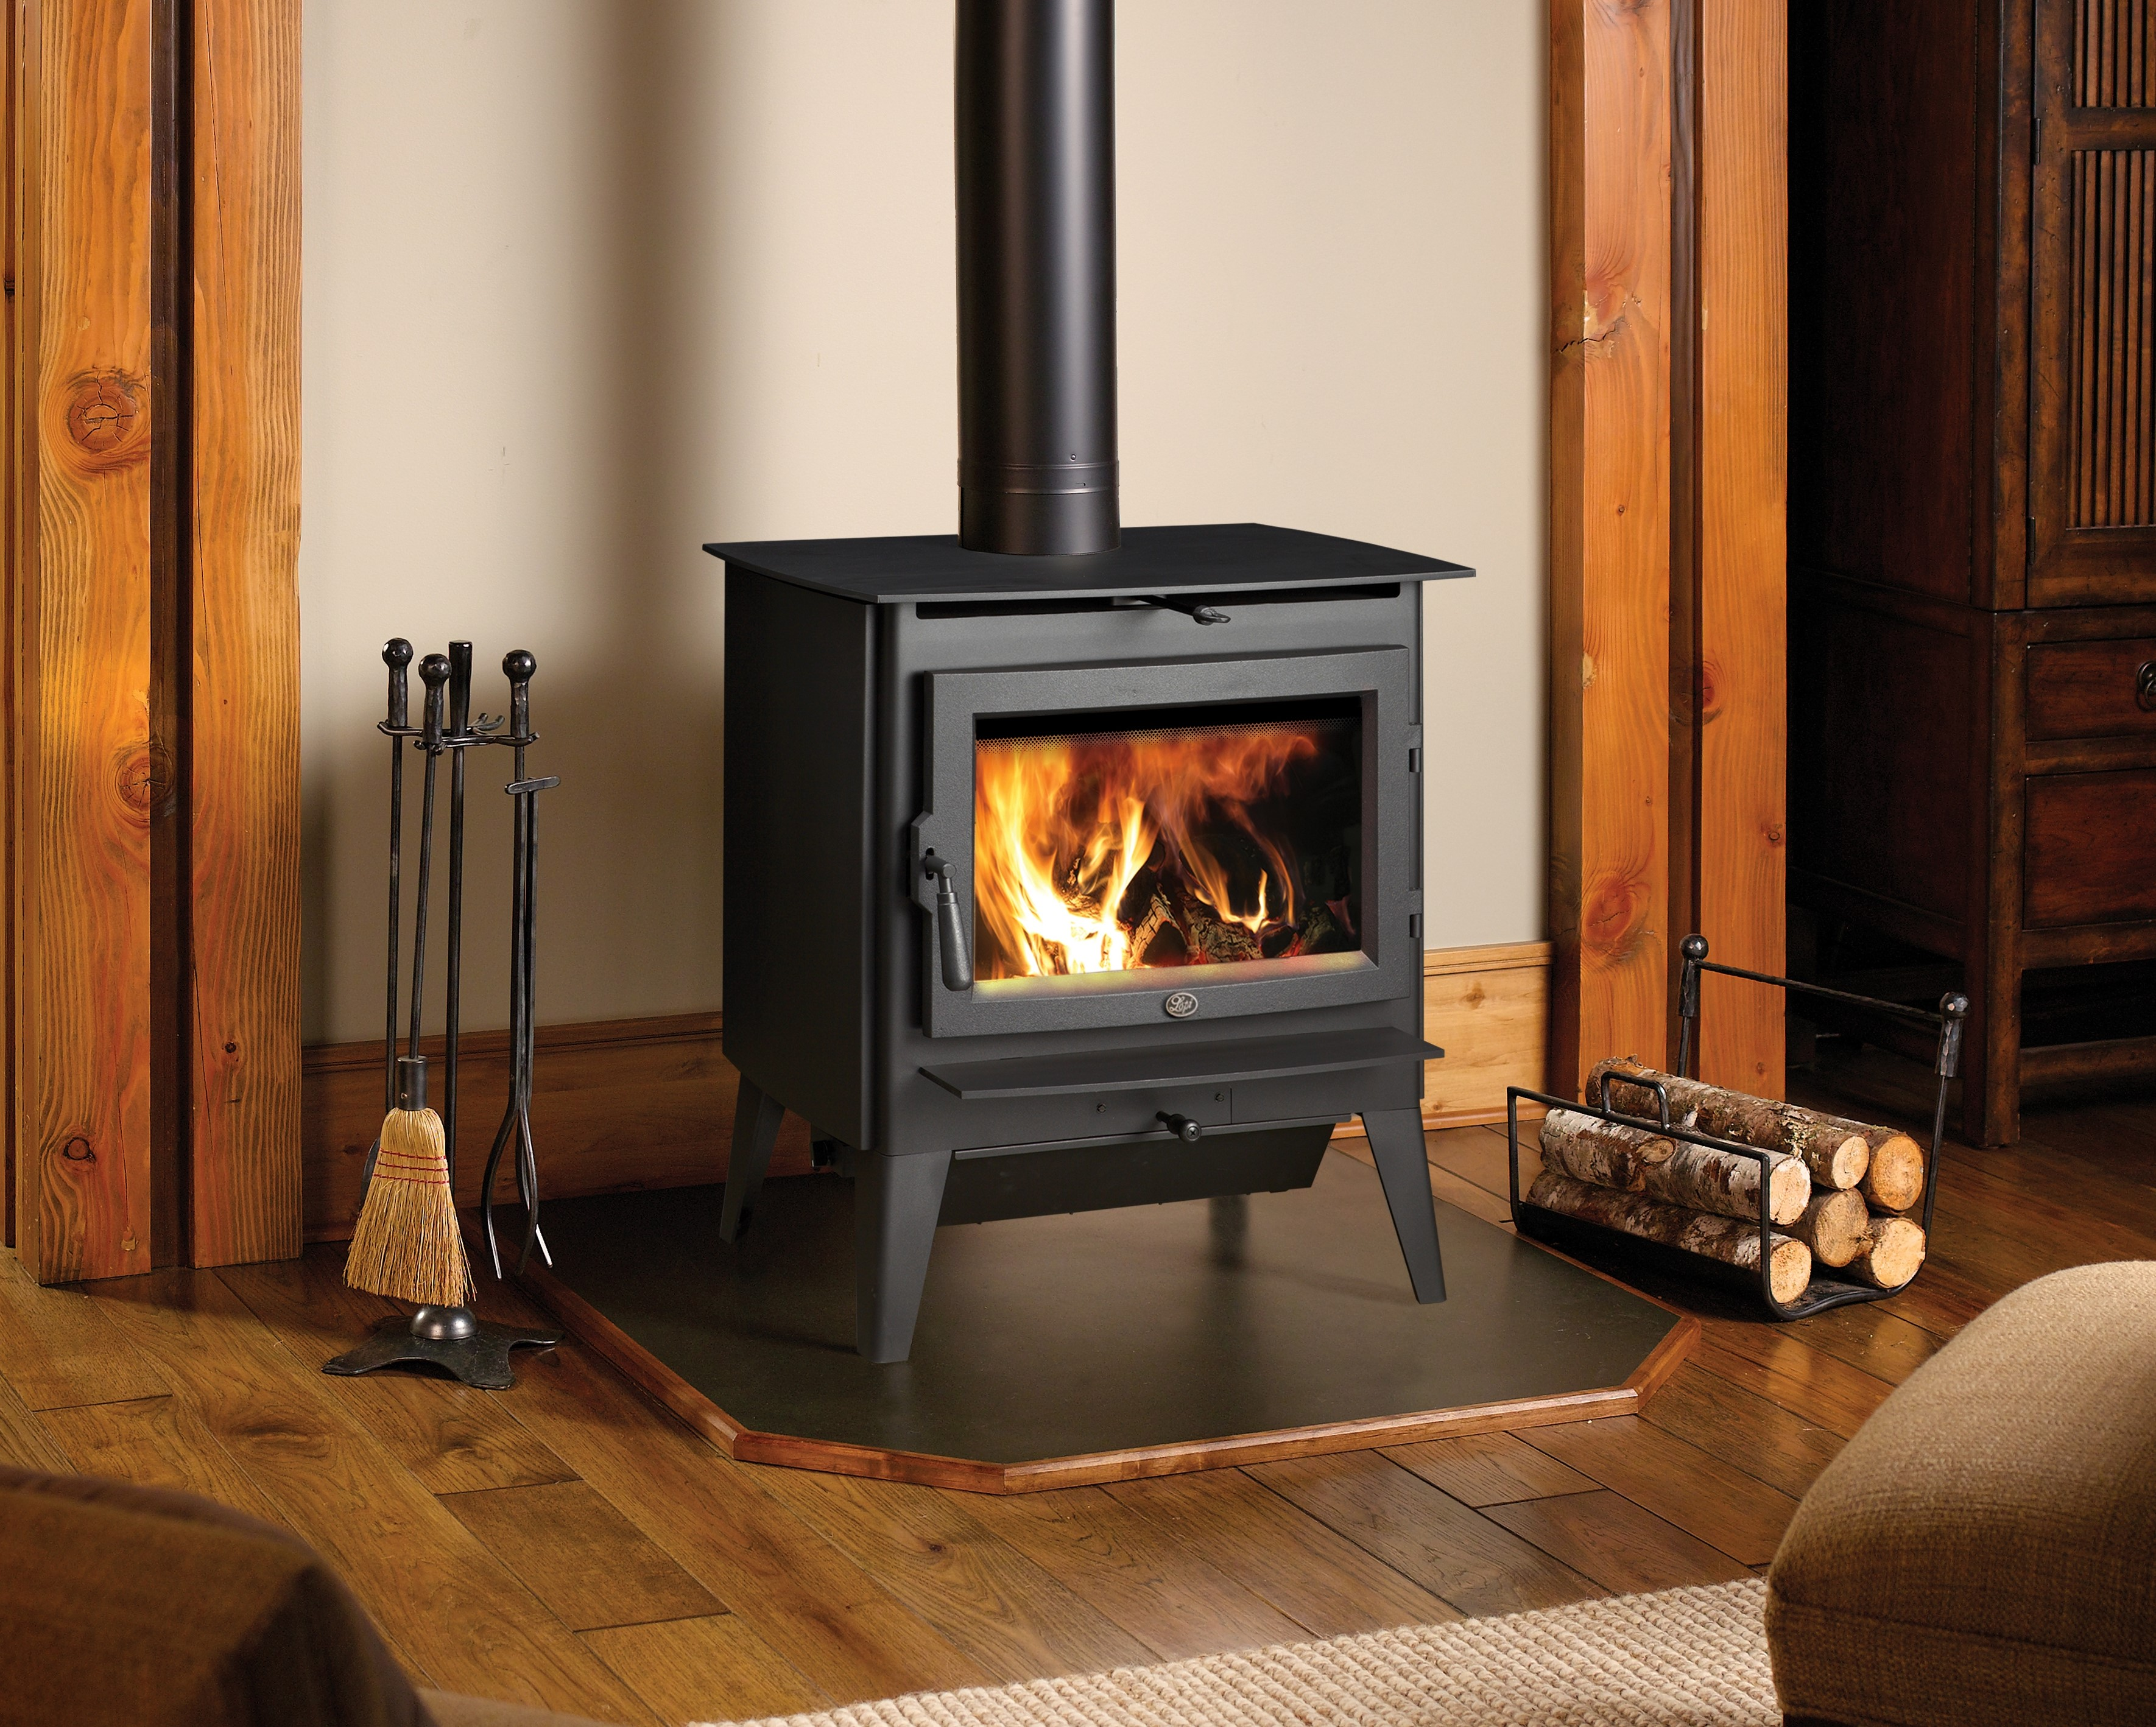 Wood Fireplaces, Stoves & Inserts Family Image